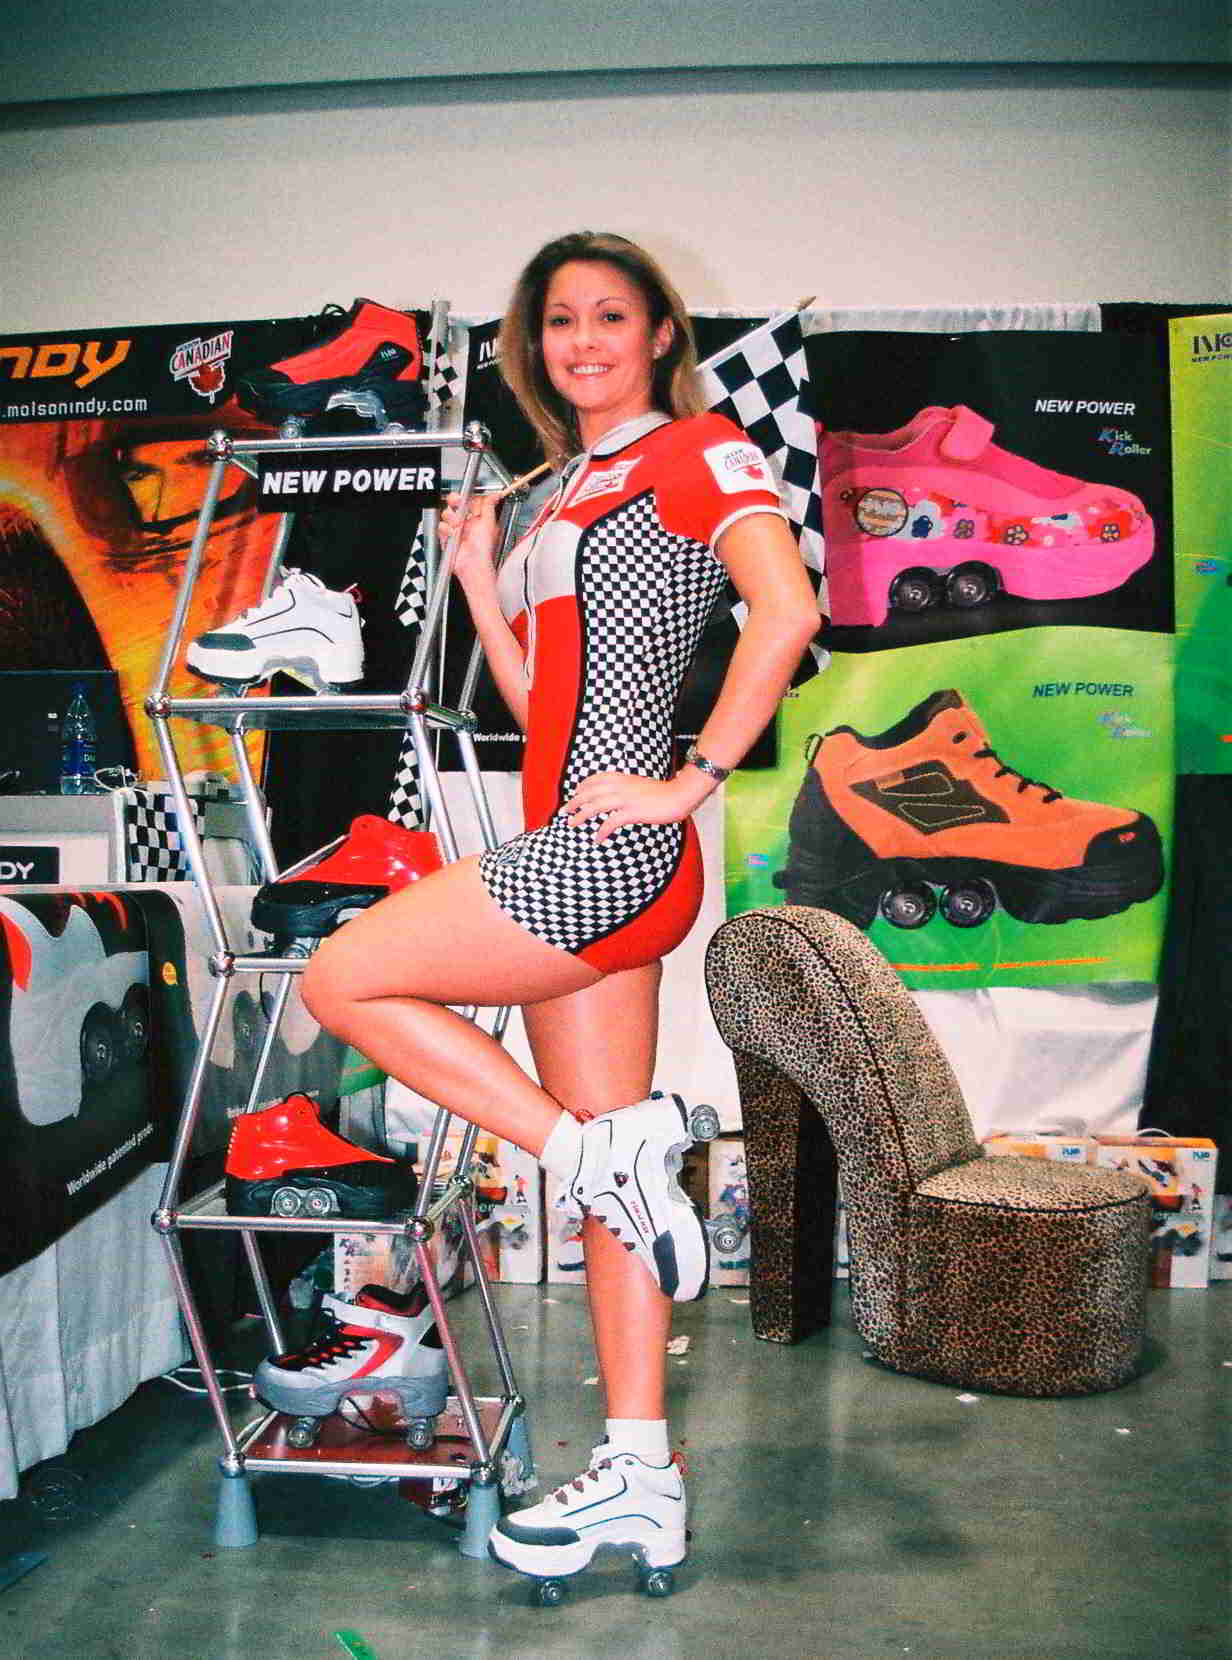 Roller shoes canada -